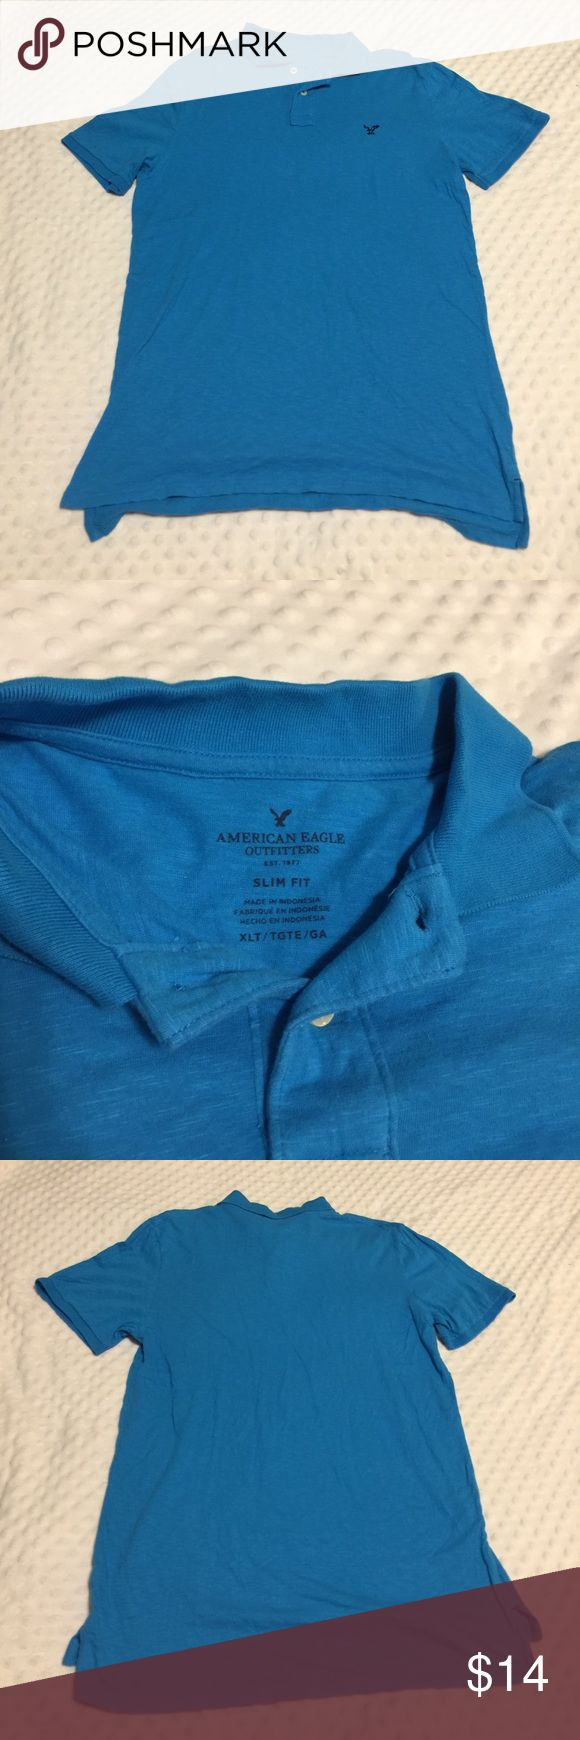 American Eagle Men's Polo Shirt American Eagle Men's Polo, Men's XLT, Slim Fit. American Eagle Outfitters Shirts Polos